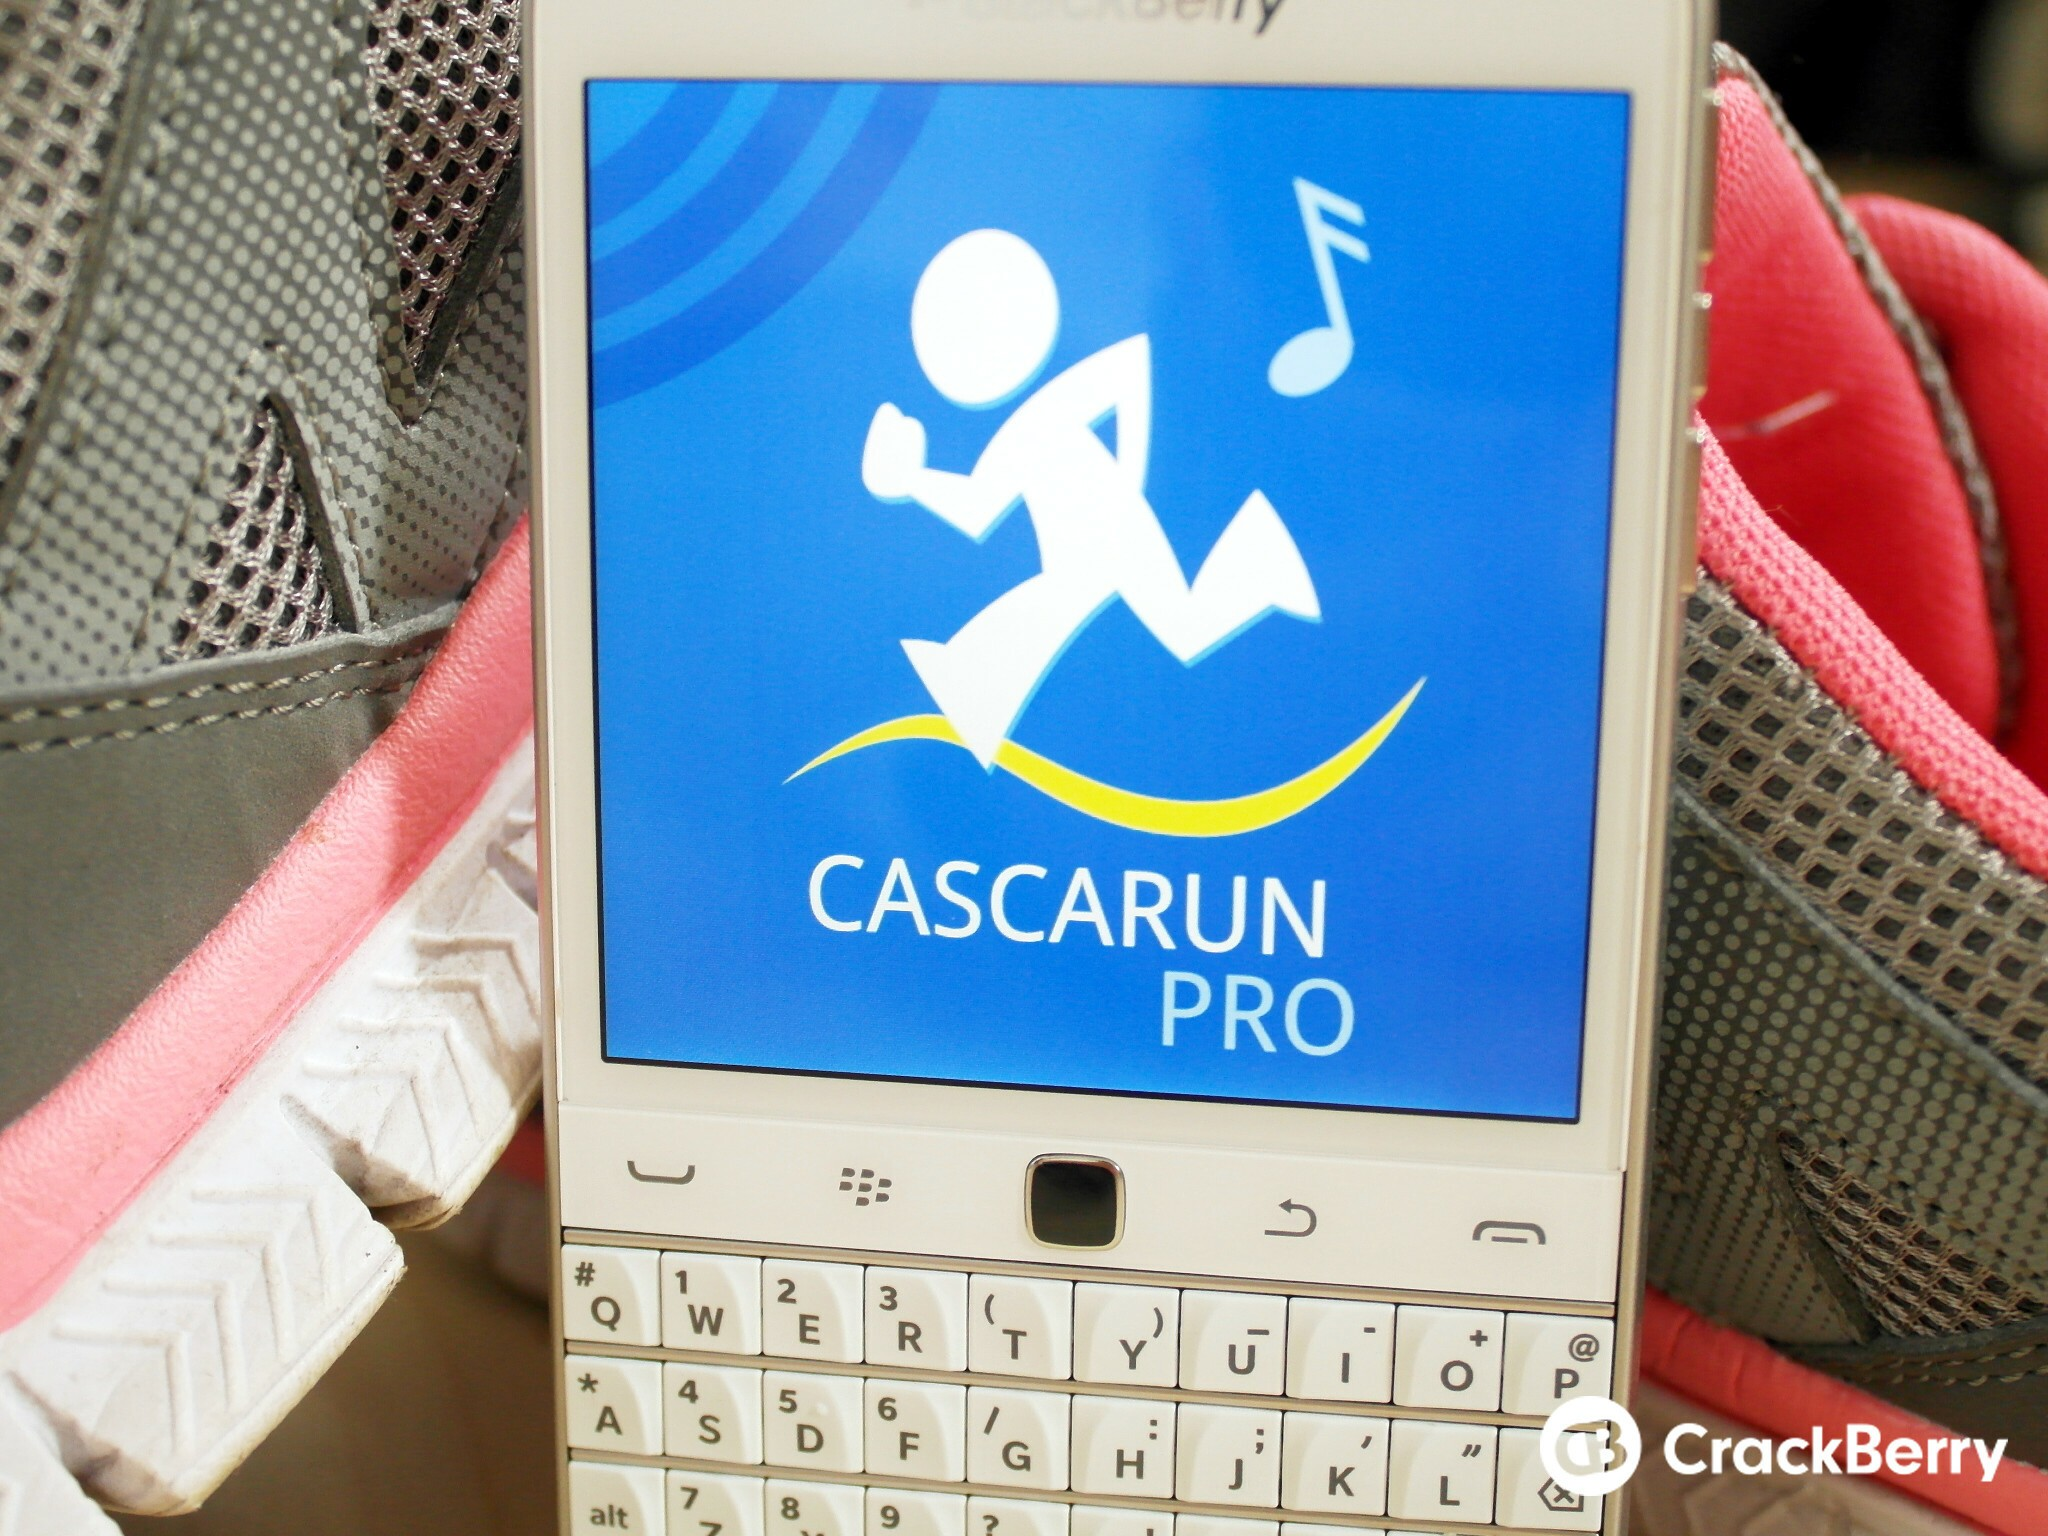 Get yourself a free copy of CascaRun Pro only for today